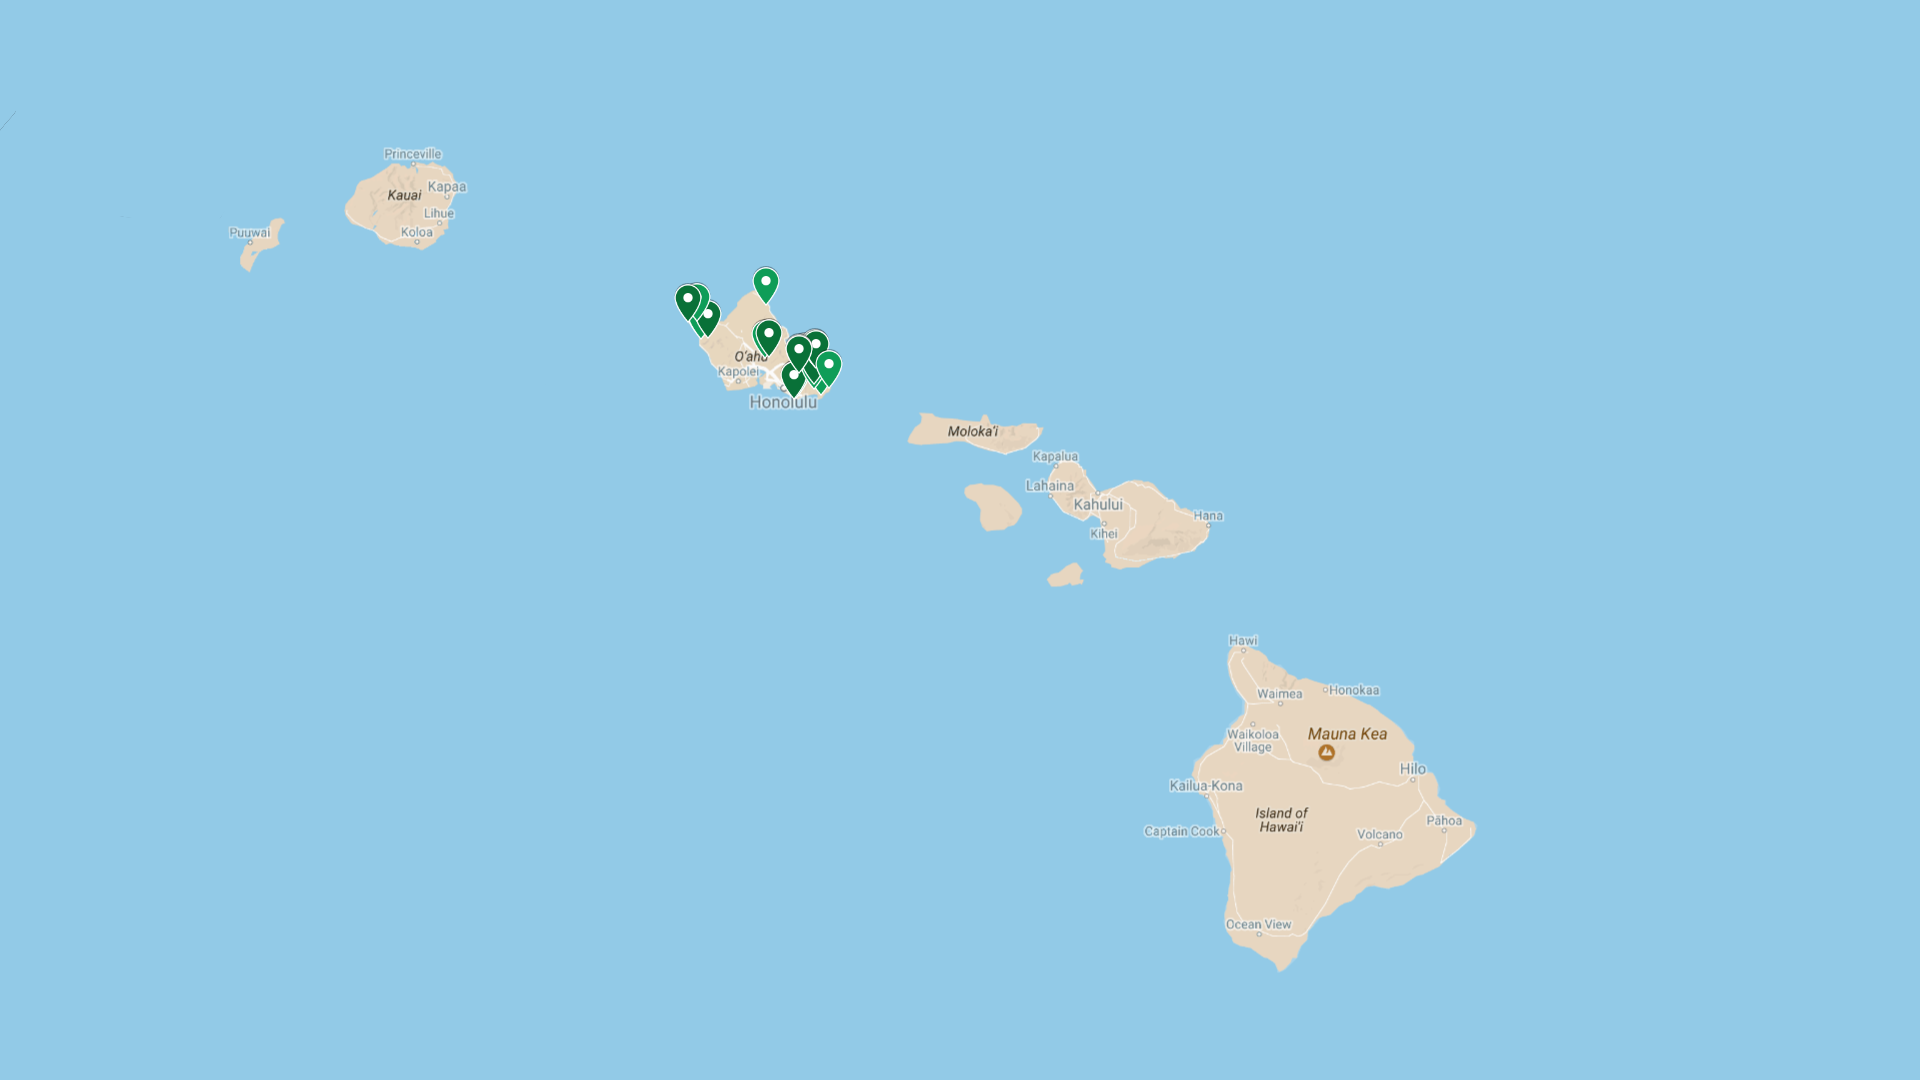 Map Of Oahu My Interactive Oahu Map: 100 Hikes, Beaches, Eats and More  Map Of Oahu